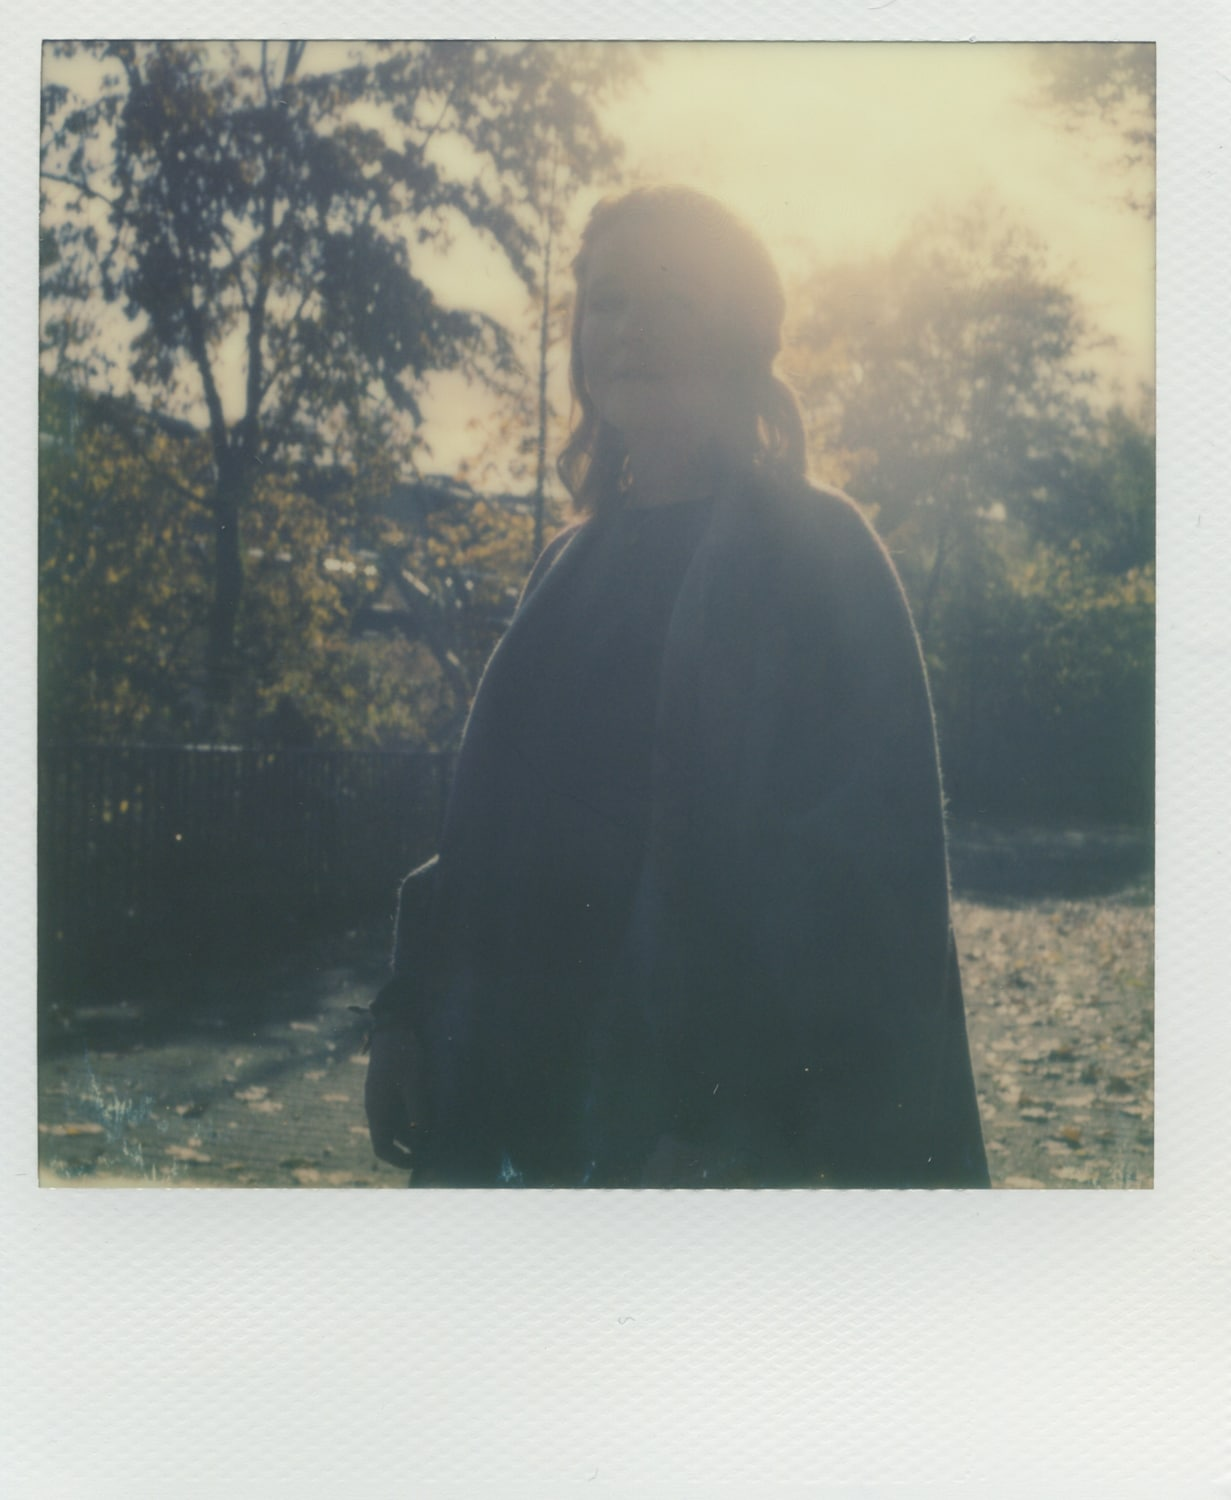 Portrait Polaroid Analog